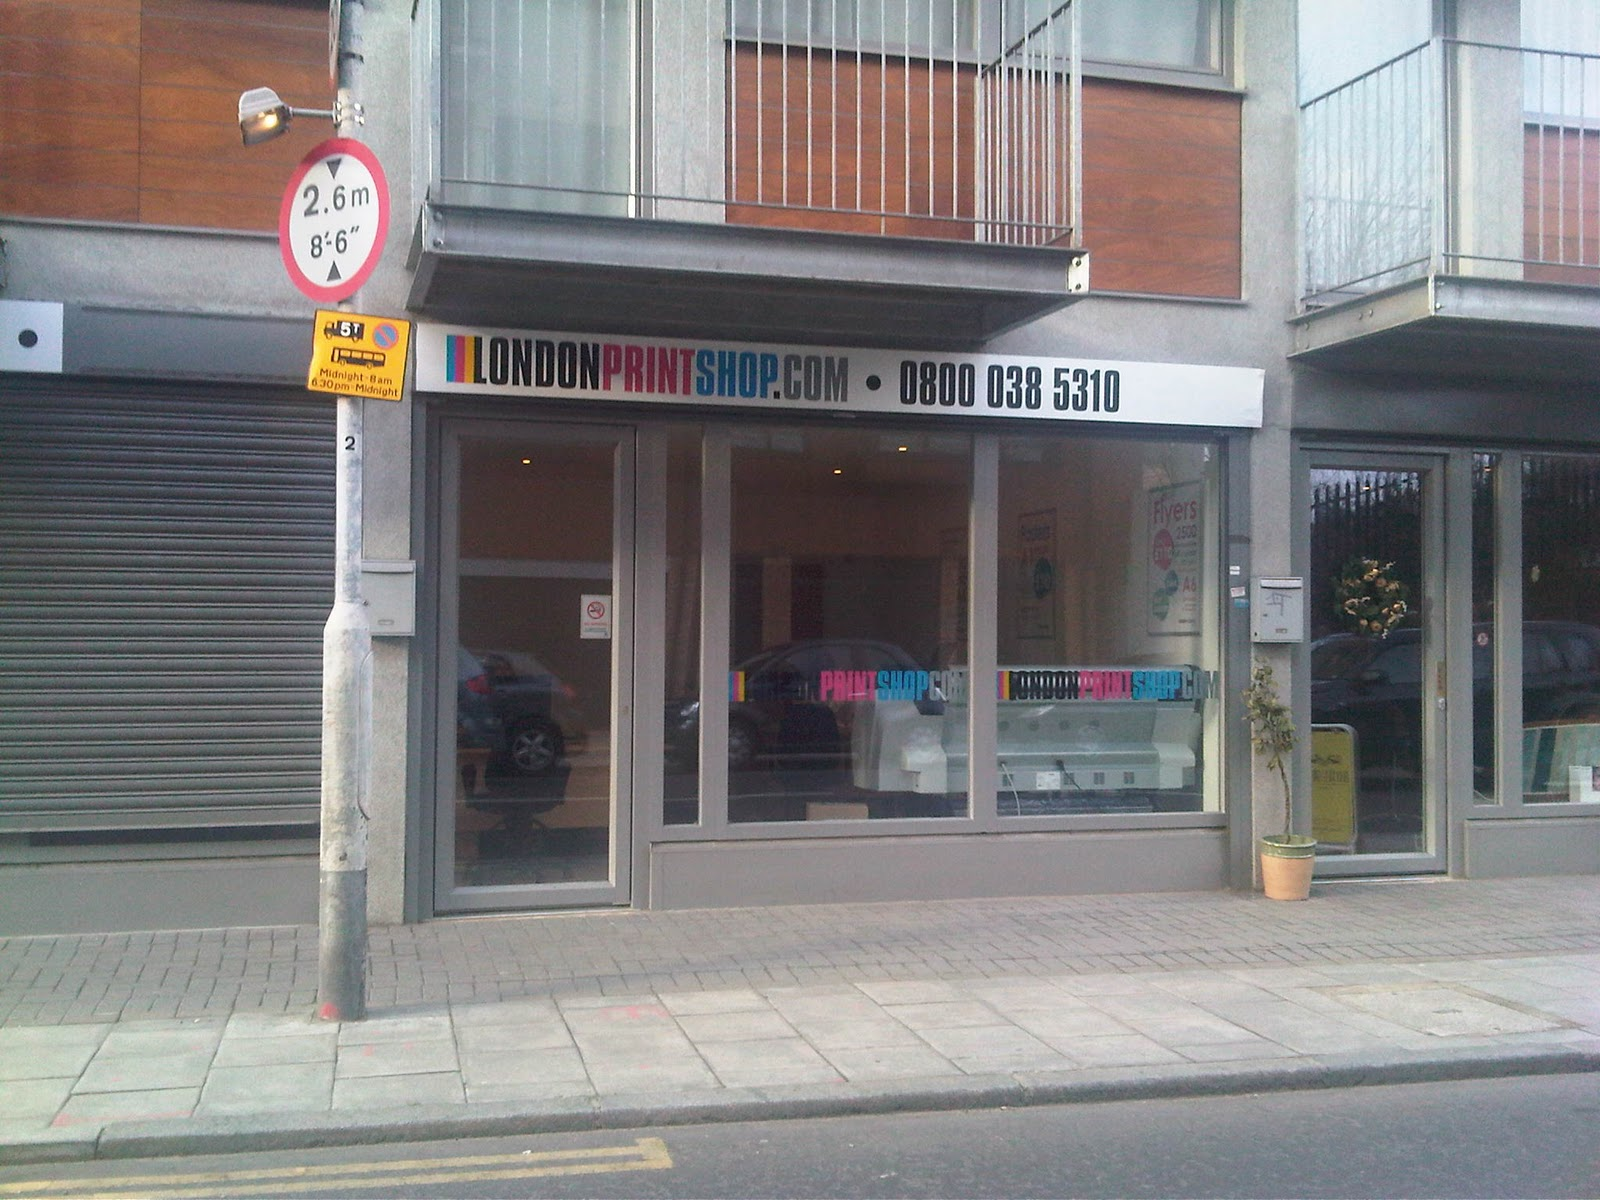 Hair shop lewisham